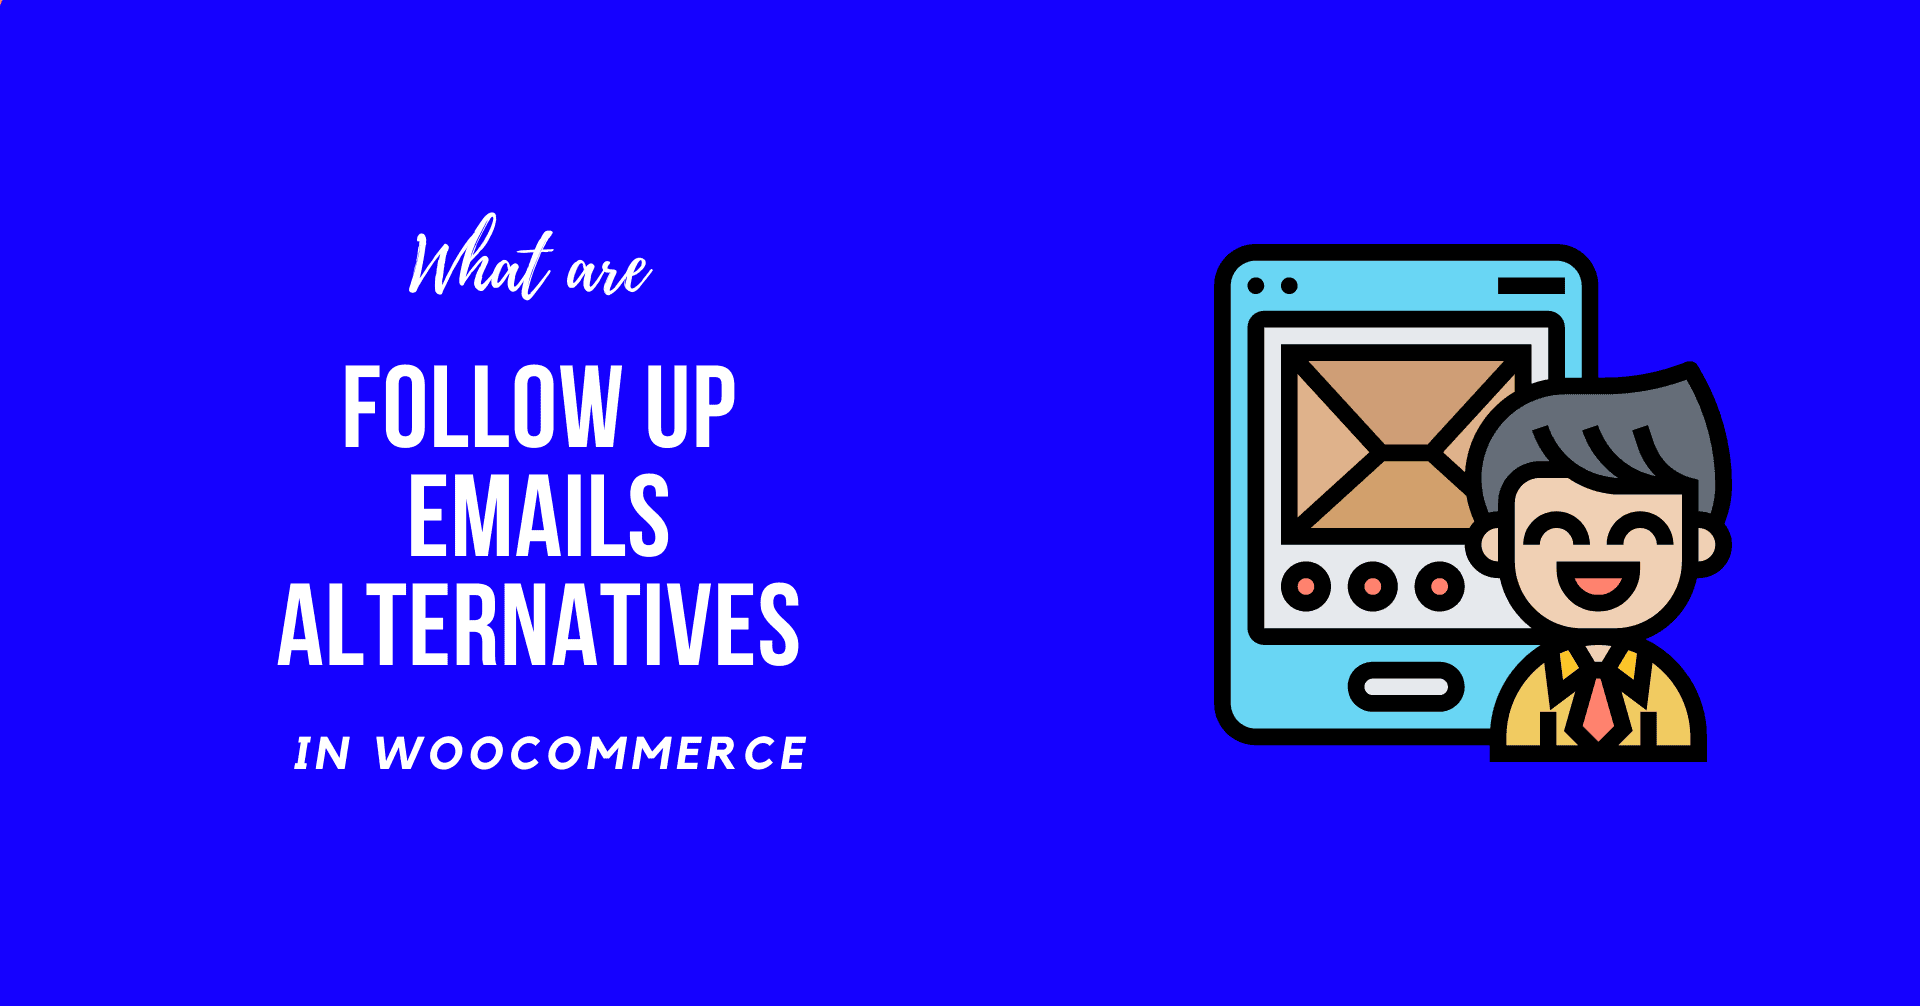 What are WooCommerce Follow Up Emails Alternatives